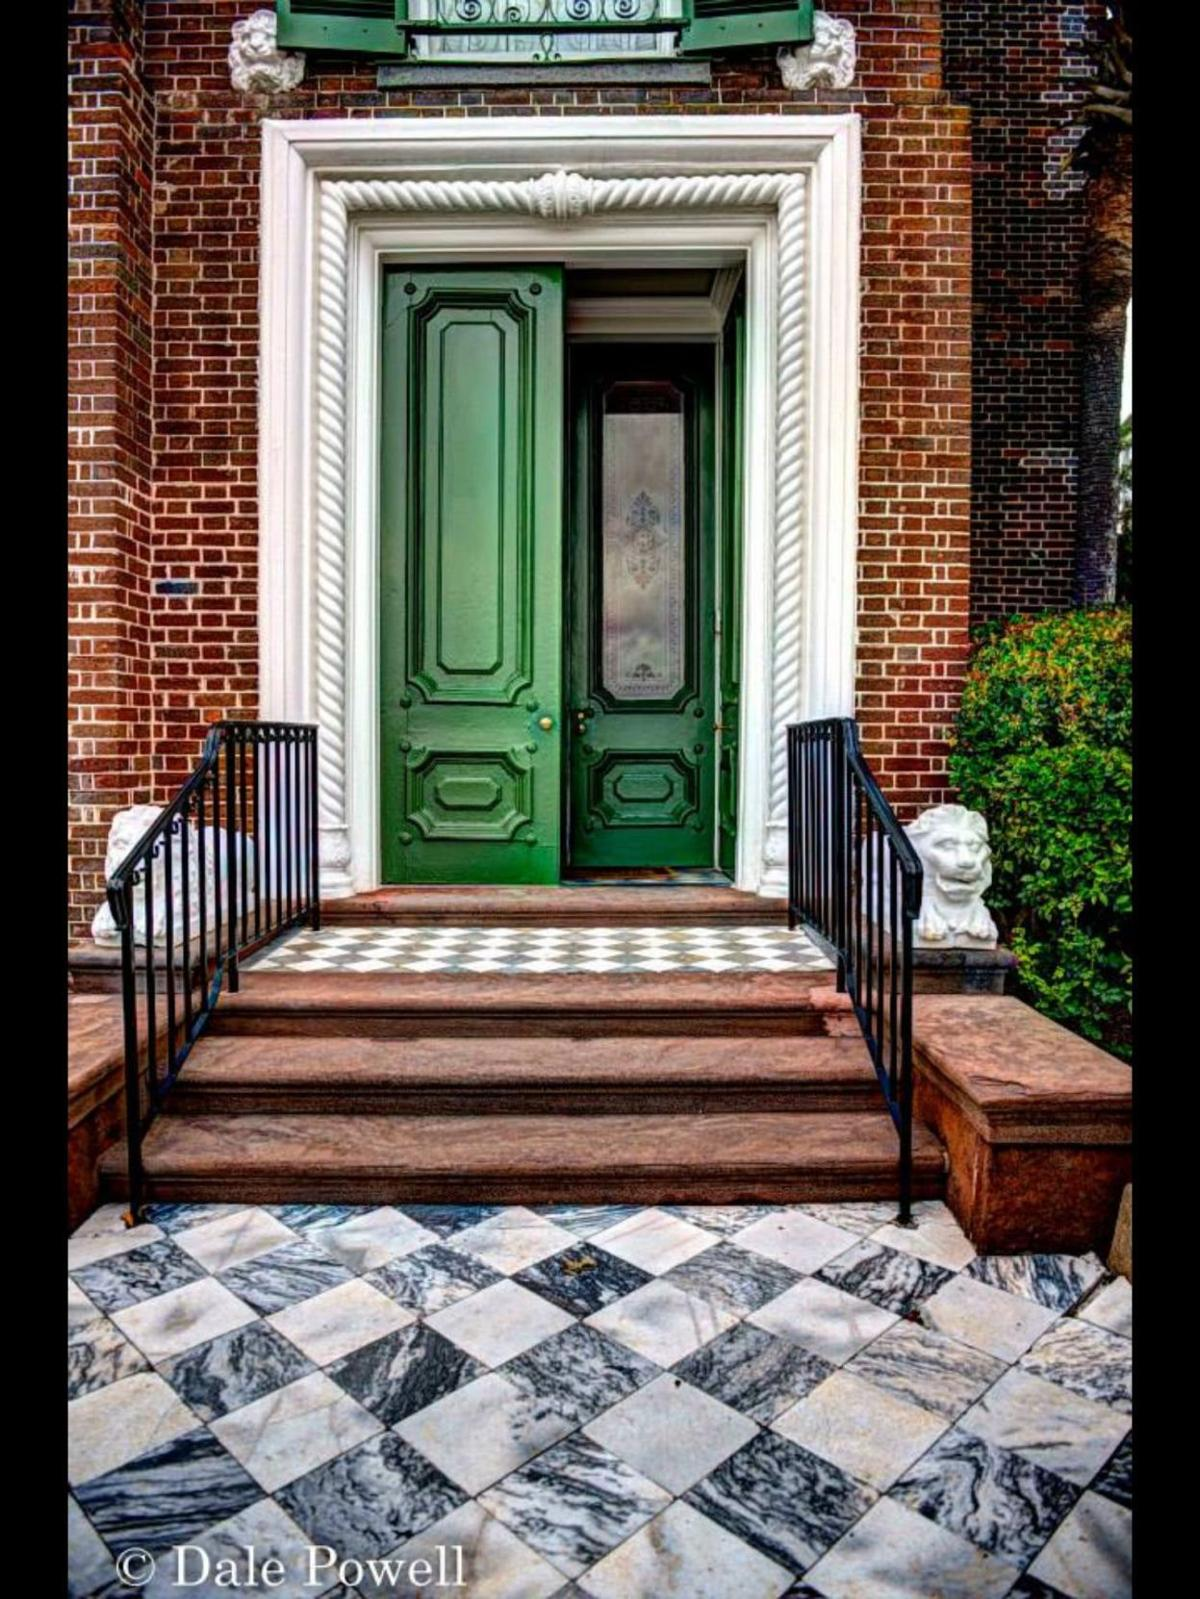 Your 'Lowcountry Doorways' opened our eyes, now show us an 'Early Morning'